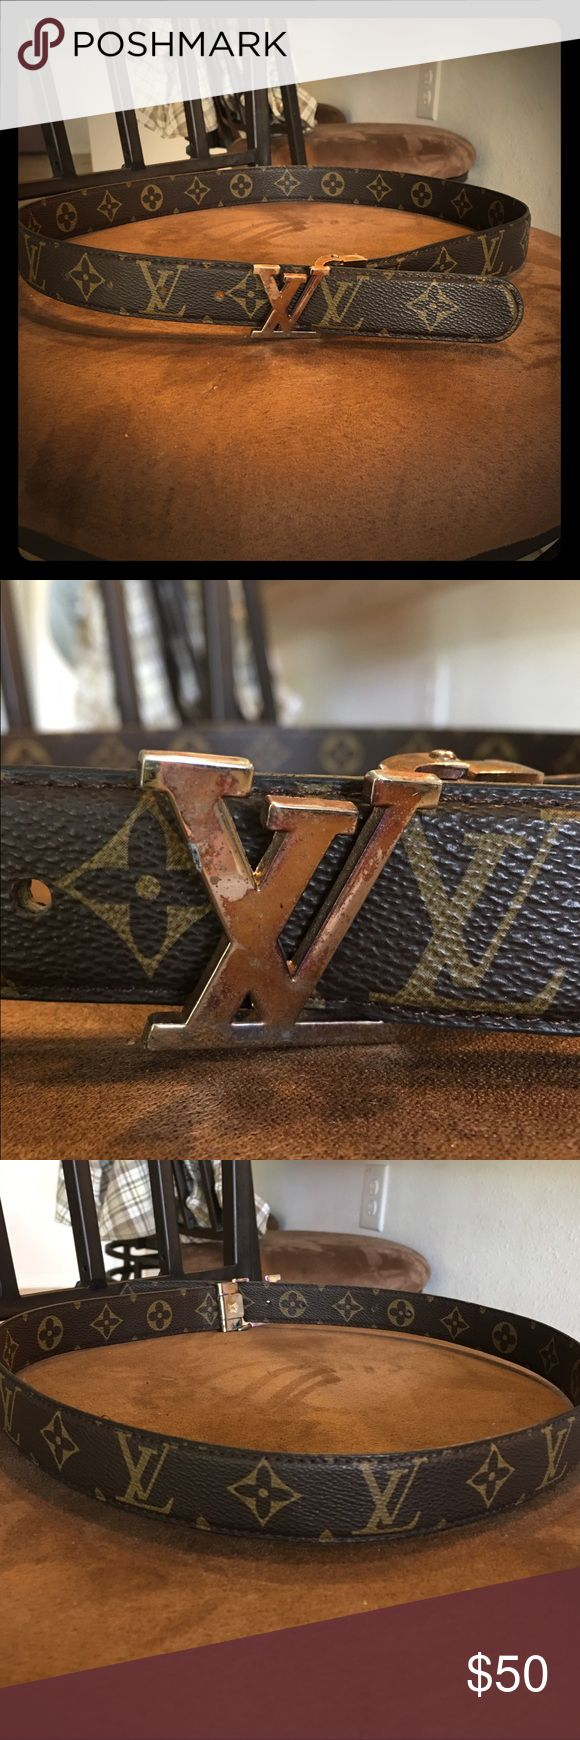 Louis Vuitton belt Louis Vuitton belt, I believe it is a replica. Fits a size small medium. The belt it's self is in great condition. The belt buckle is in mint condition with finish rubbing off. Still has a lot of wear to go though. Looks vintage 😄 Louis Vuitton Accessories Belts